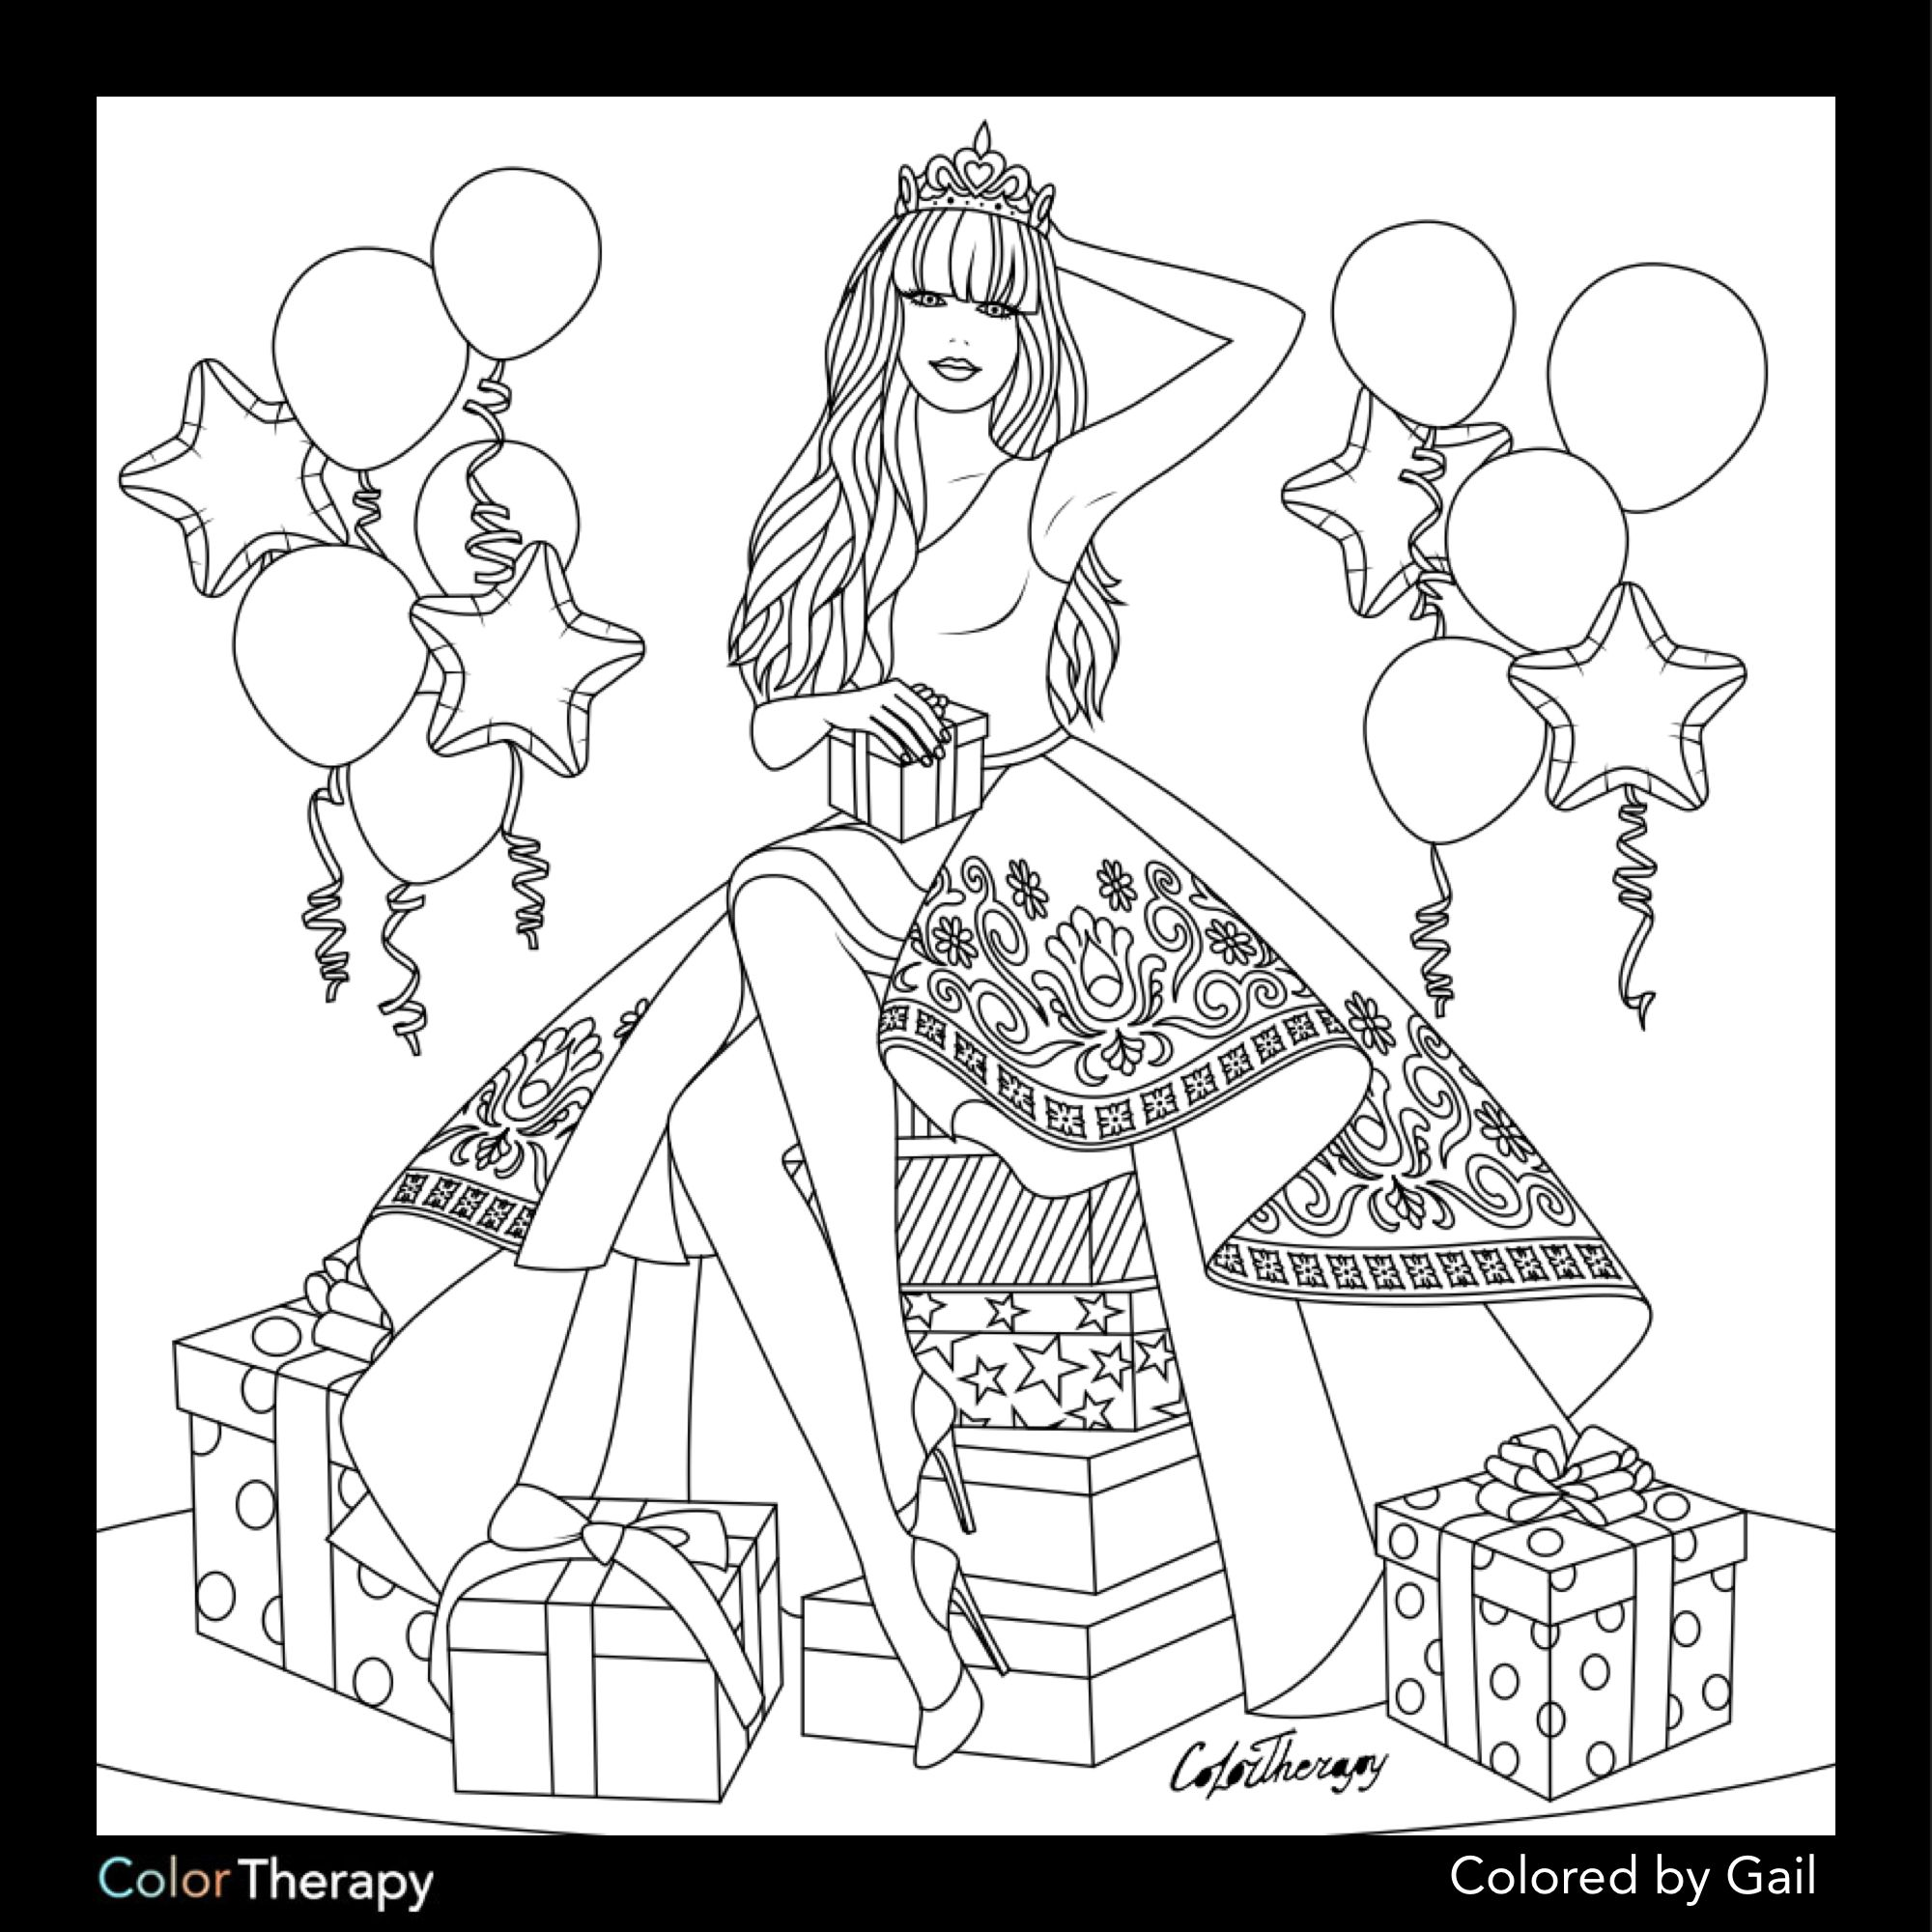 free therapy coloring pages   I colored this myself using Color Therapy App. It was so ...